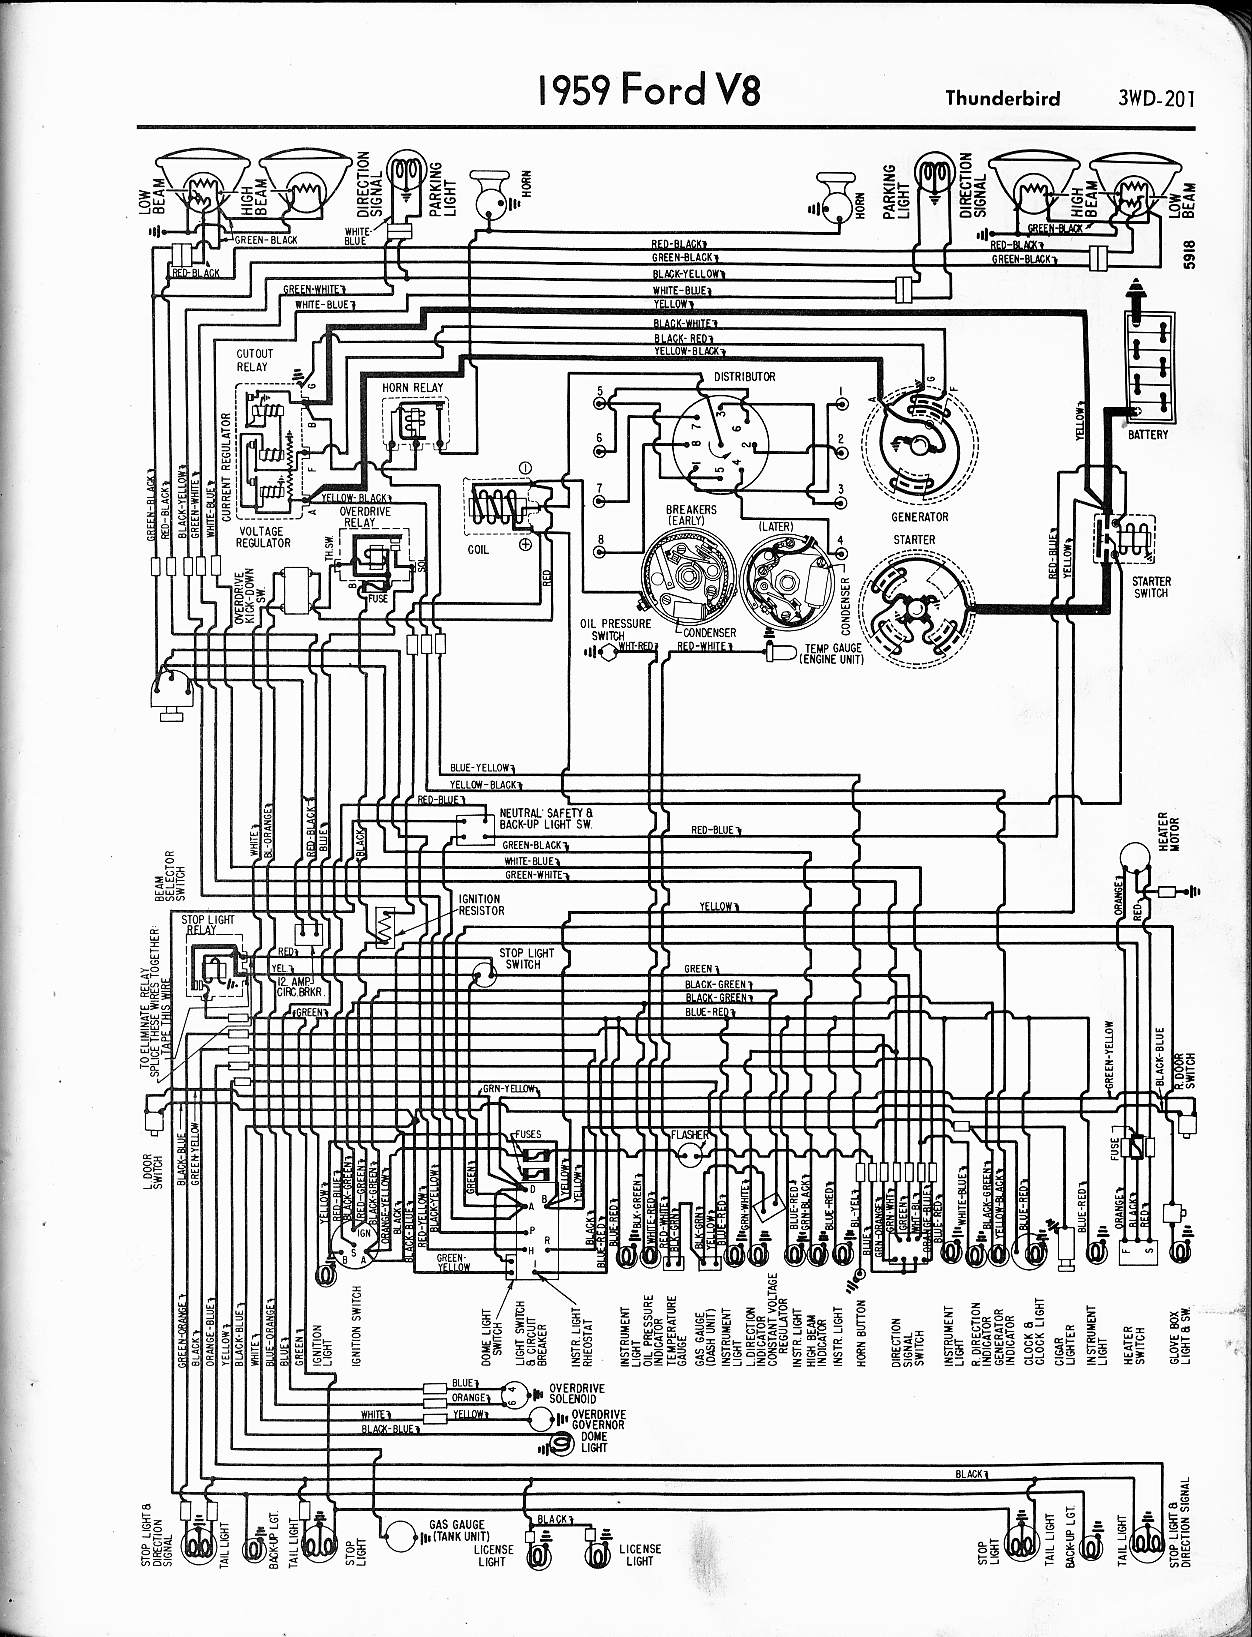 1977 ford f 250 highboy also 1965 ford falcon wiring diagram rh jessicarm co 2003 Ford F-250 Fuse Box Diagram 2008 Ford F-250 Fuse Box Diagram